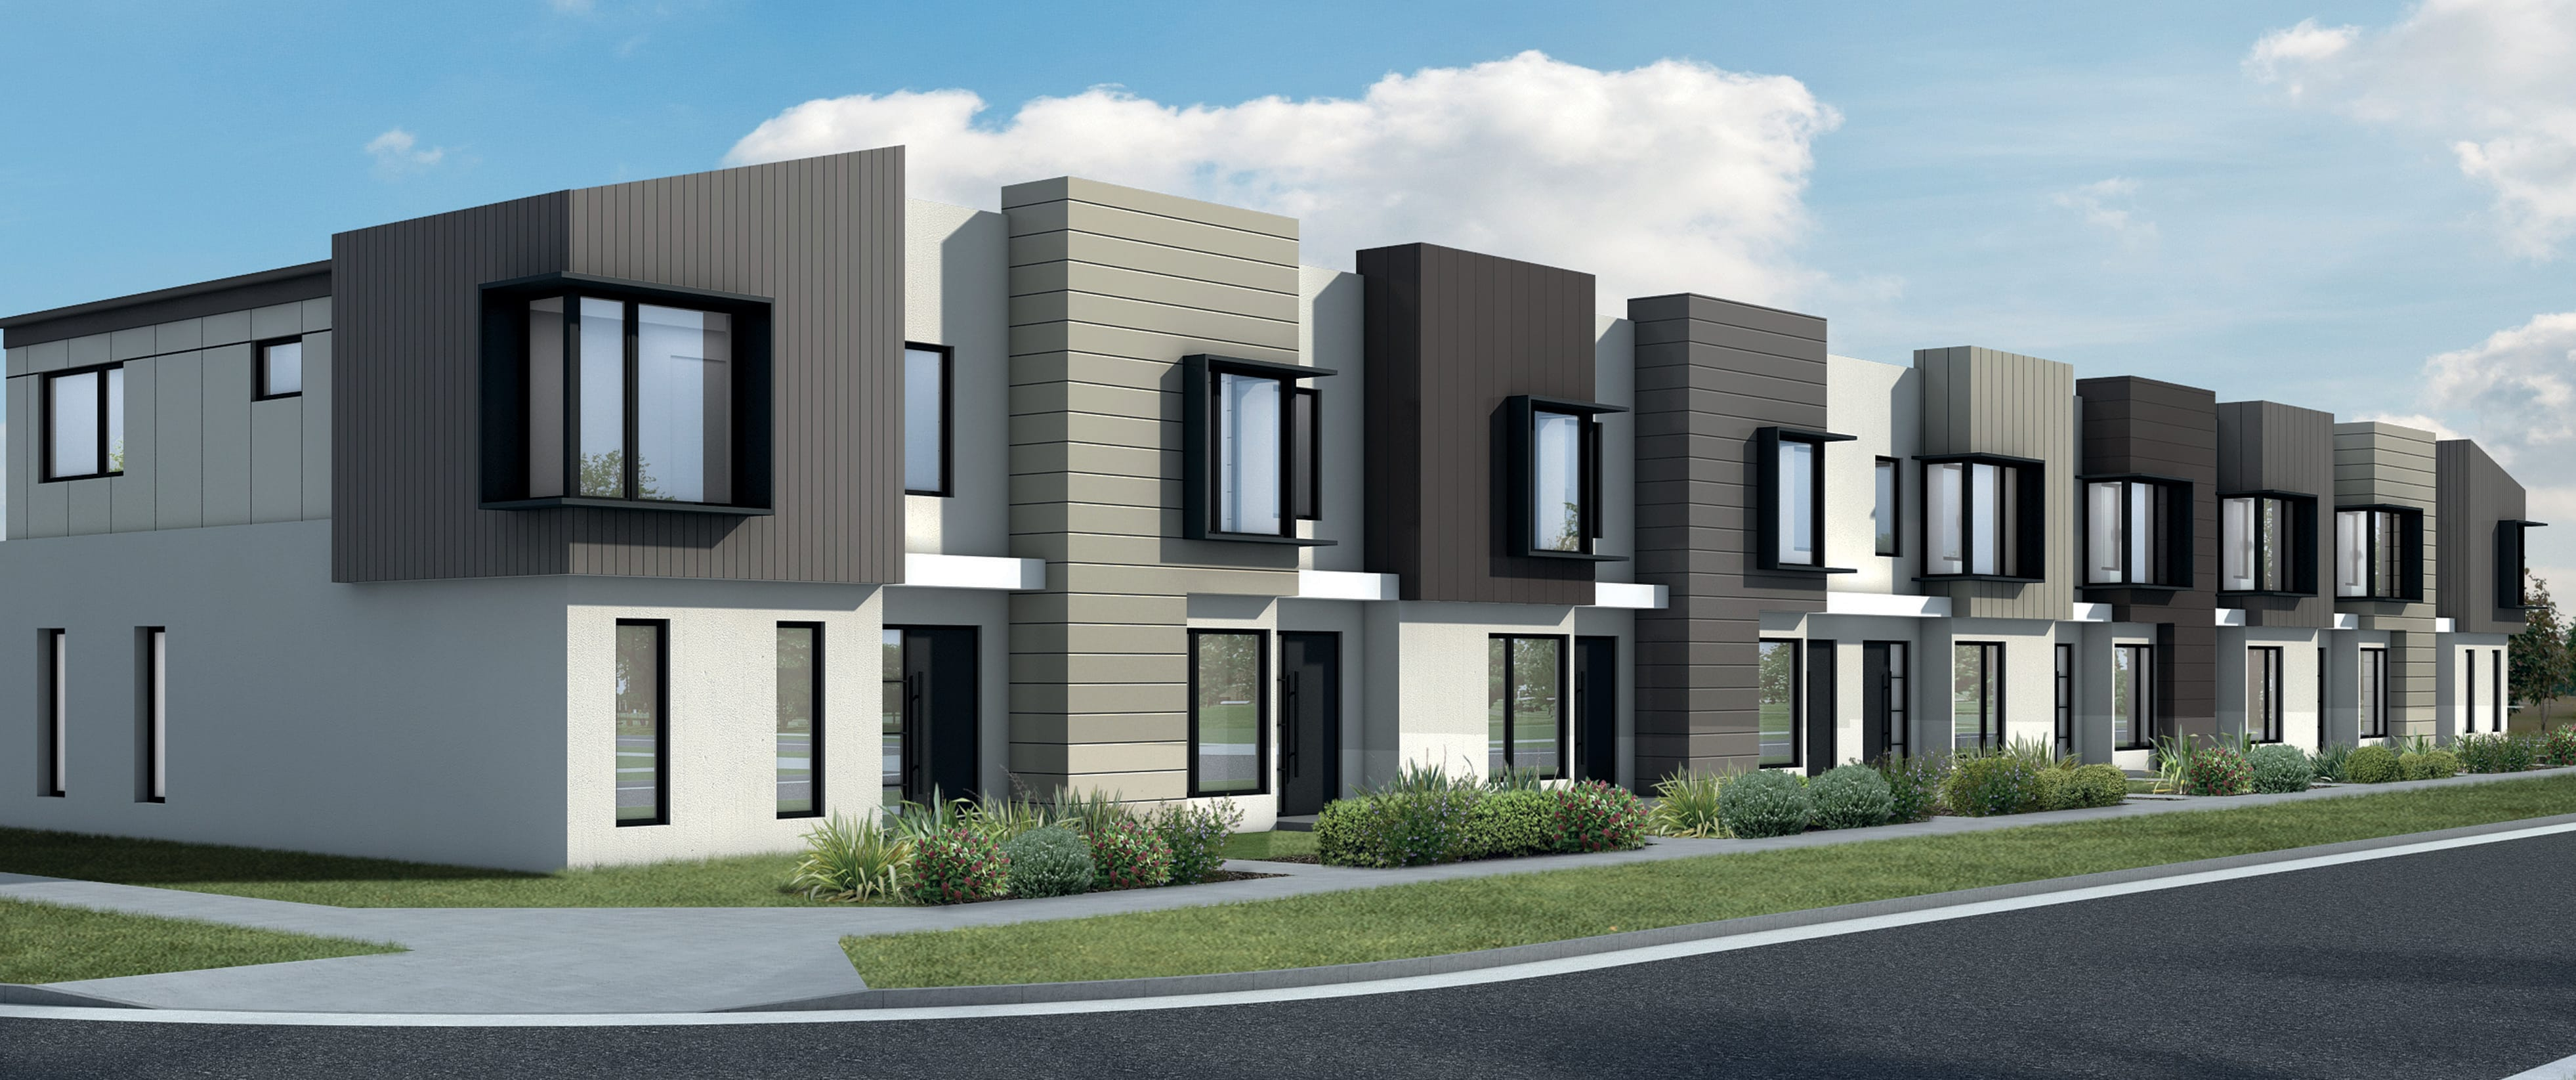 The new neighbourhood of Allanvale, Cranbourne East welcomes meticulously designed townhomes on offer.